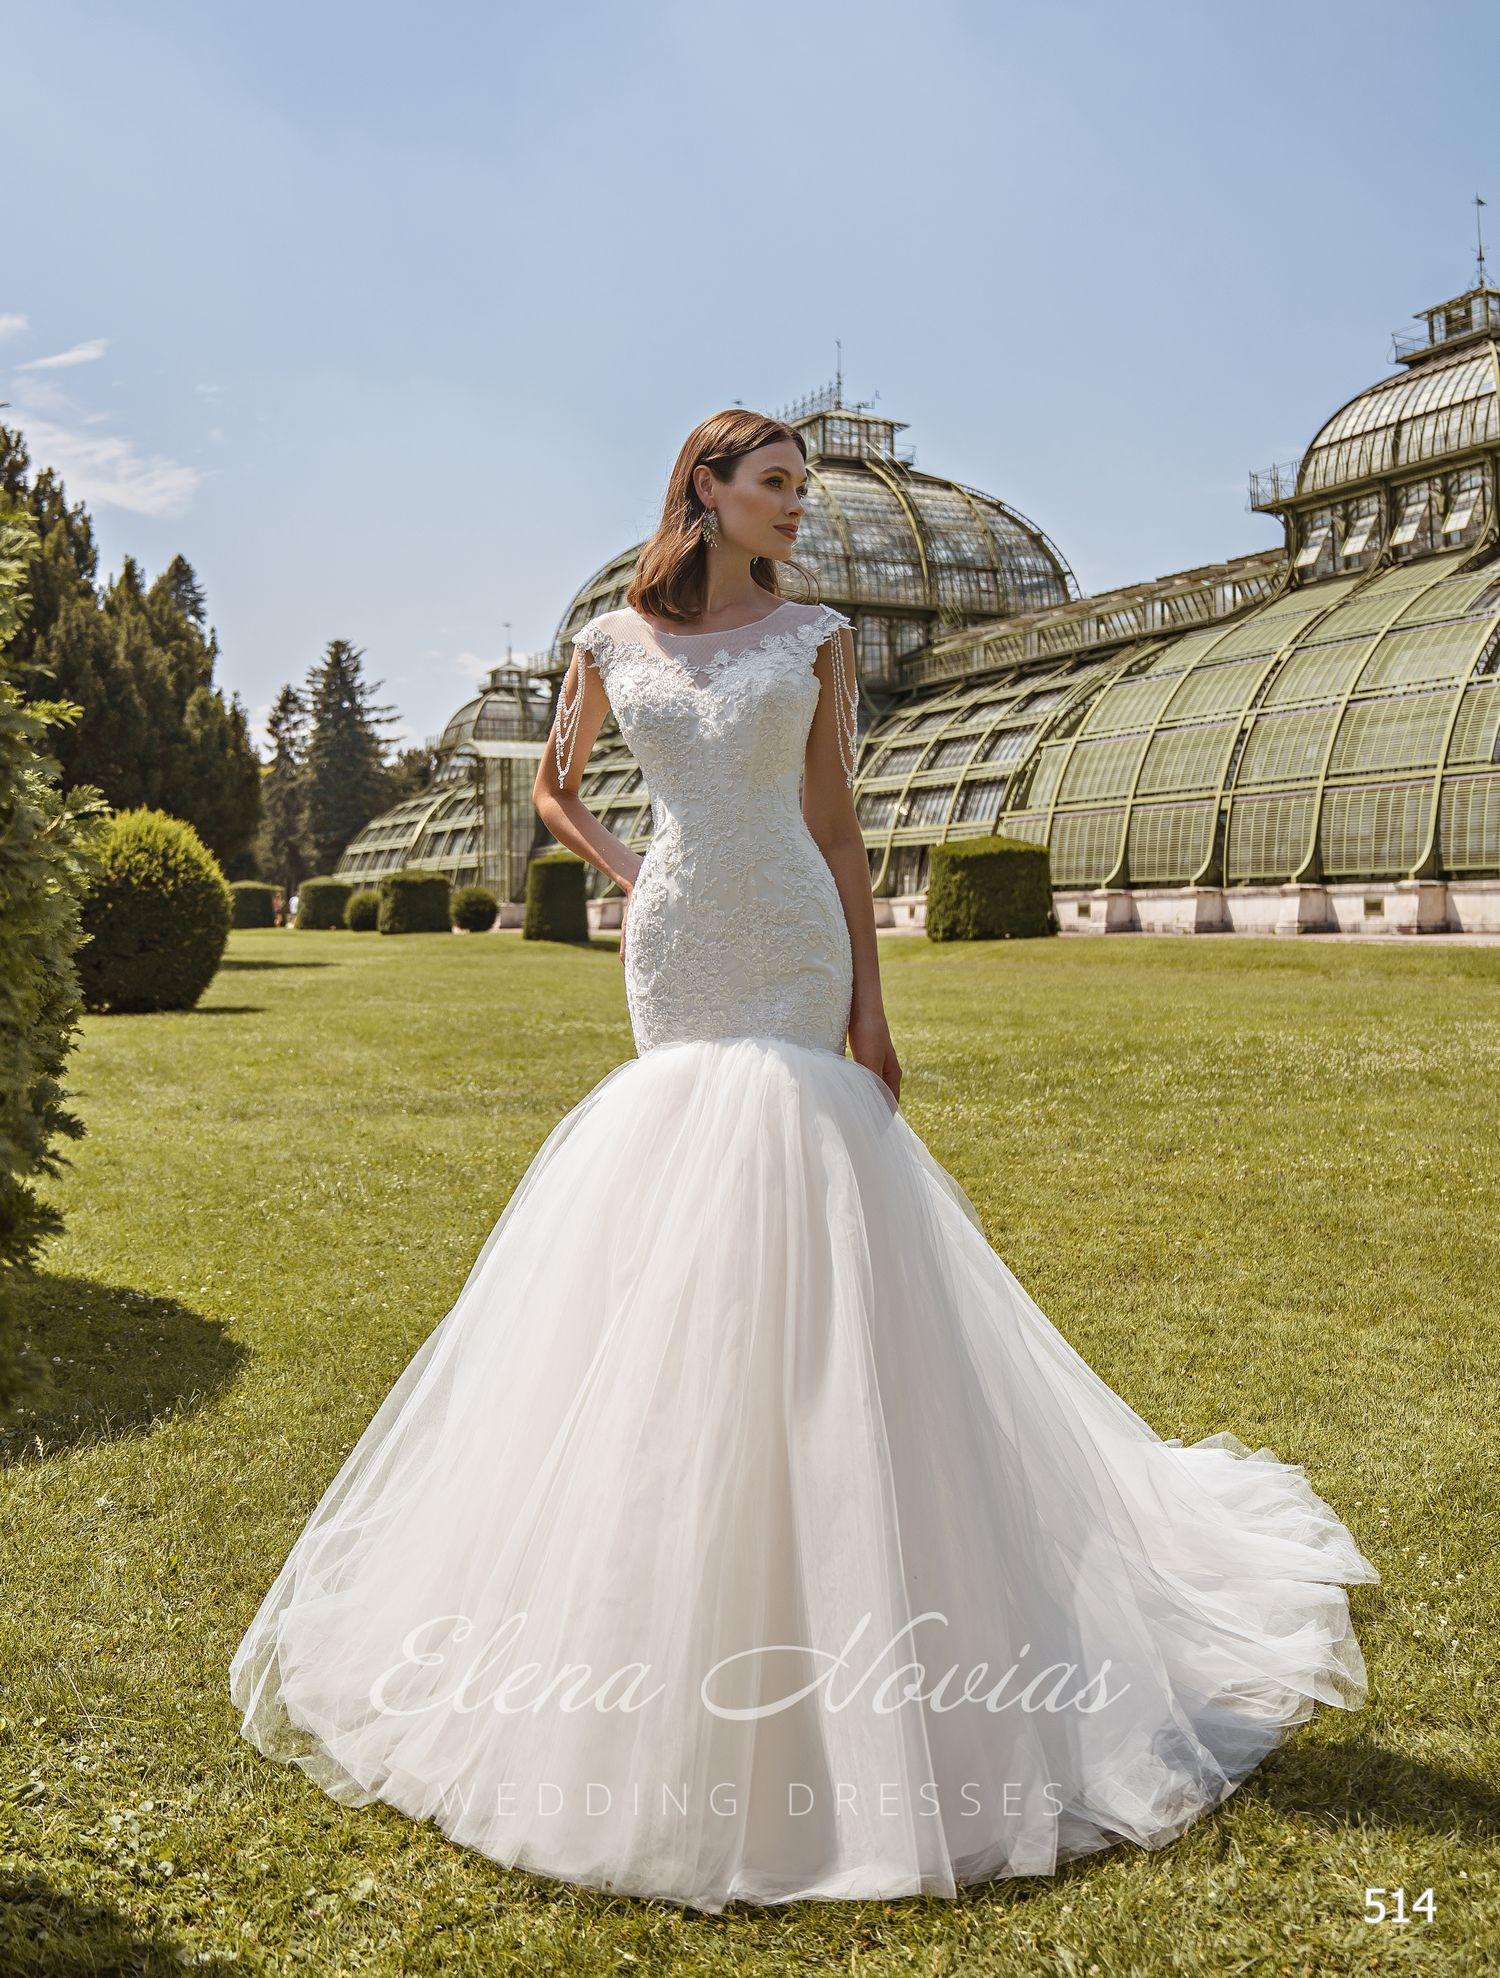 Wedding dresses 514